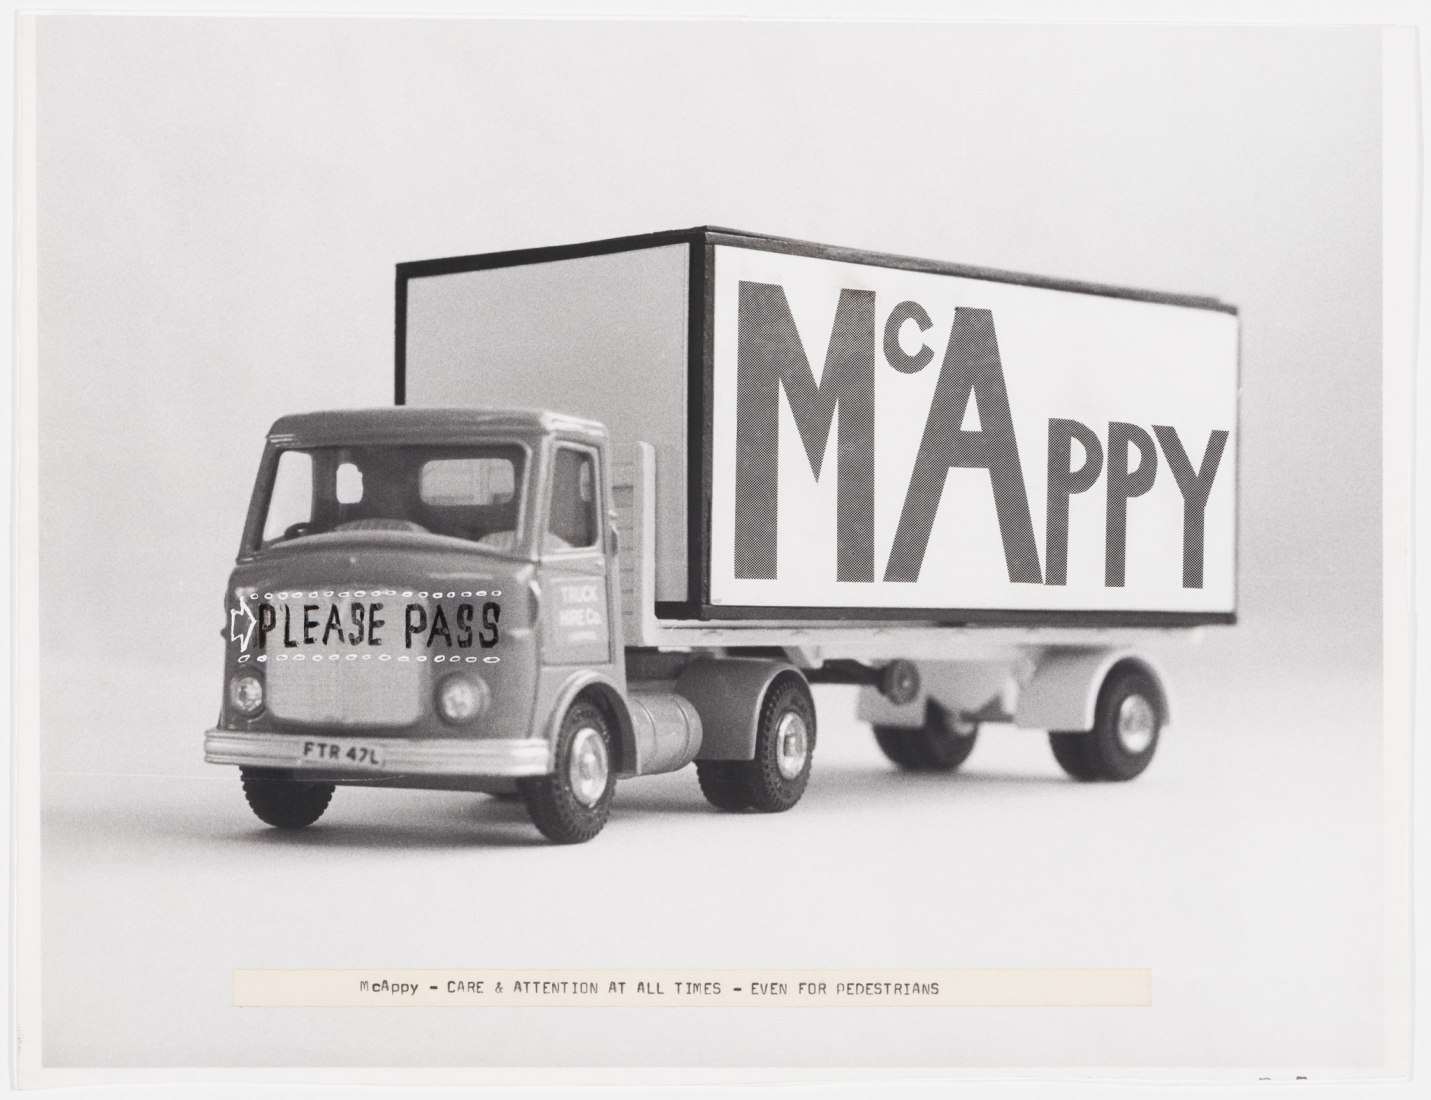 """Cedric Price. McAppy: Photograph of McAppy truck with comments,""""Care and attention at all times – even for pedestrians"""", 1973–1975. Cedric Price fonds, Canadian Centre for Architecture © CCA, Montréal."""